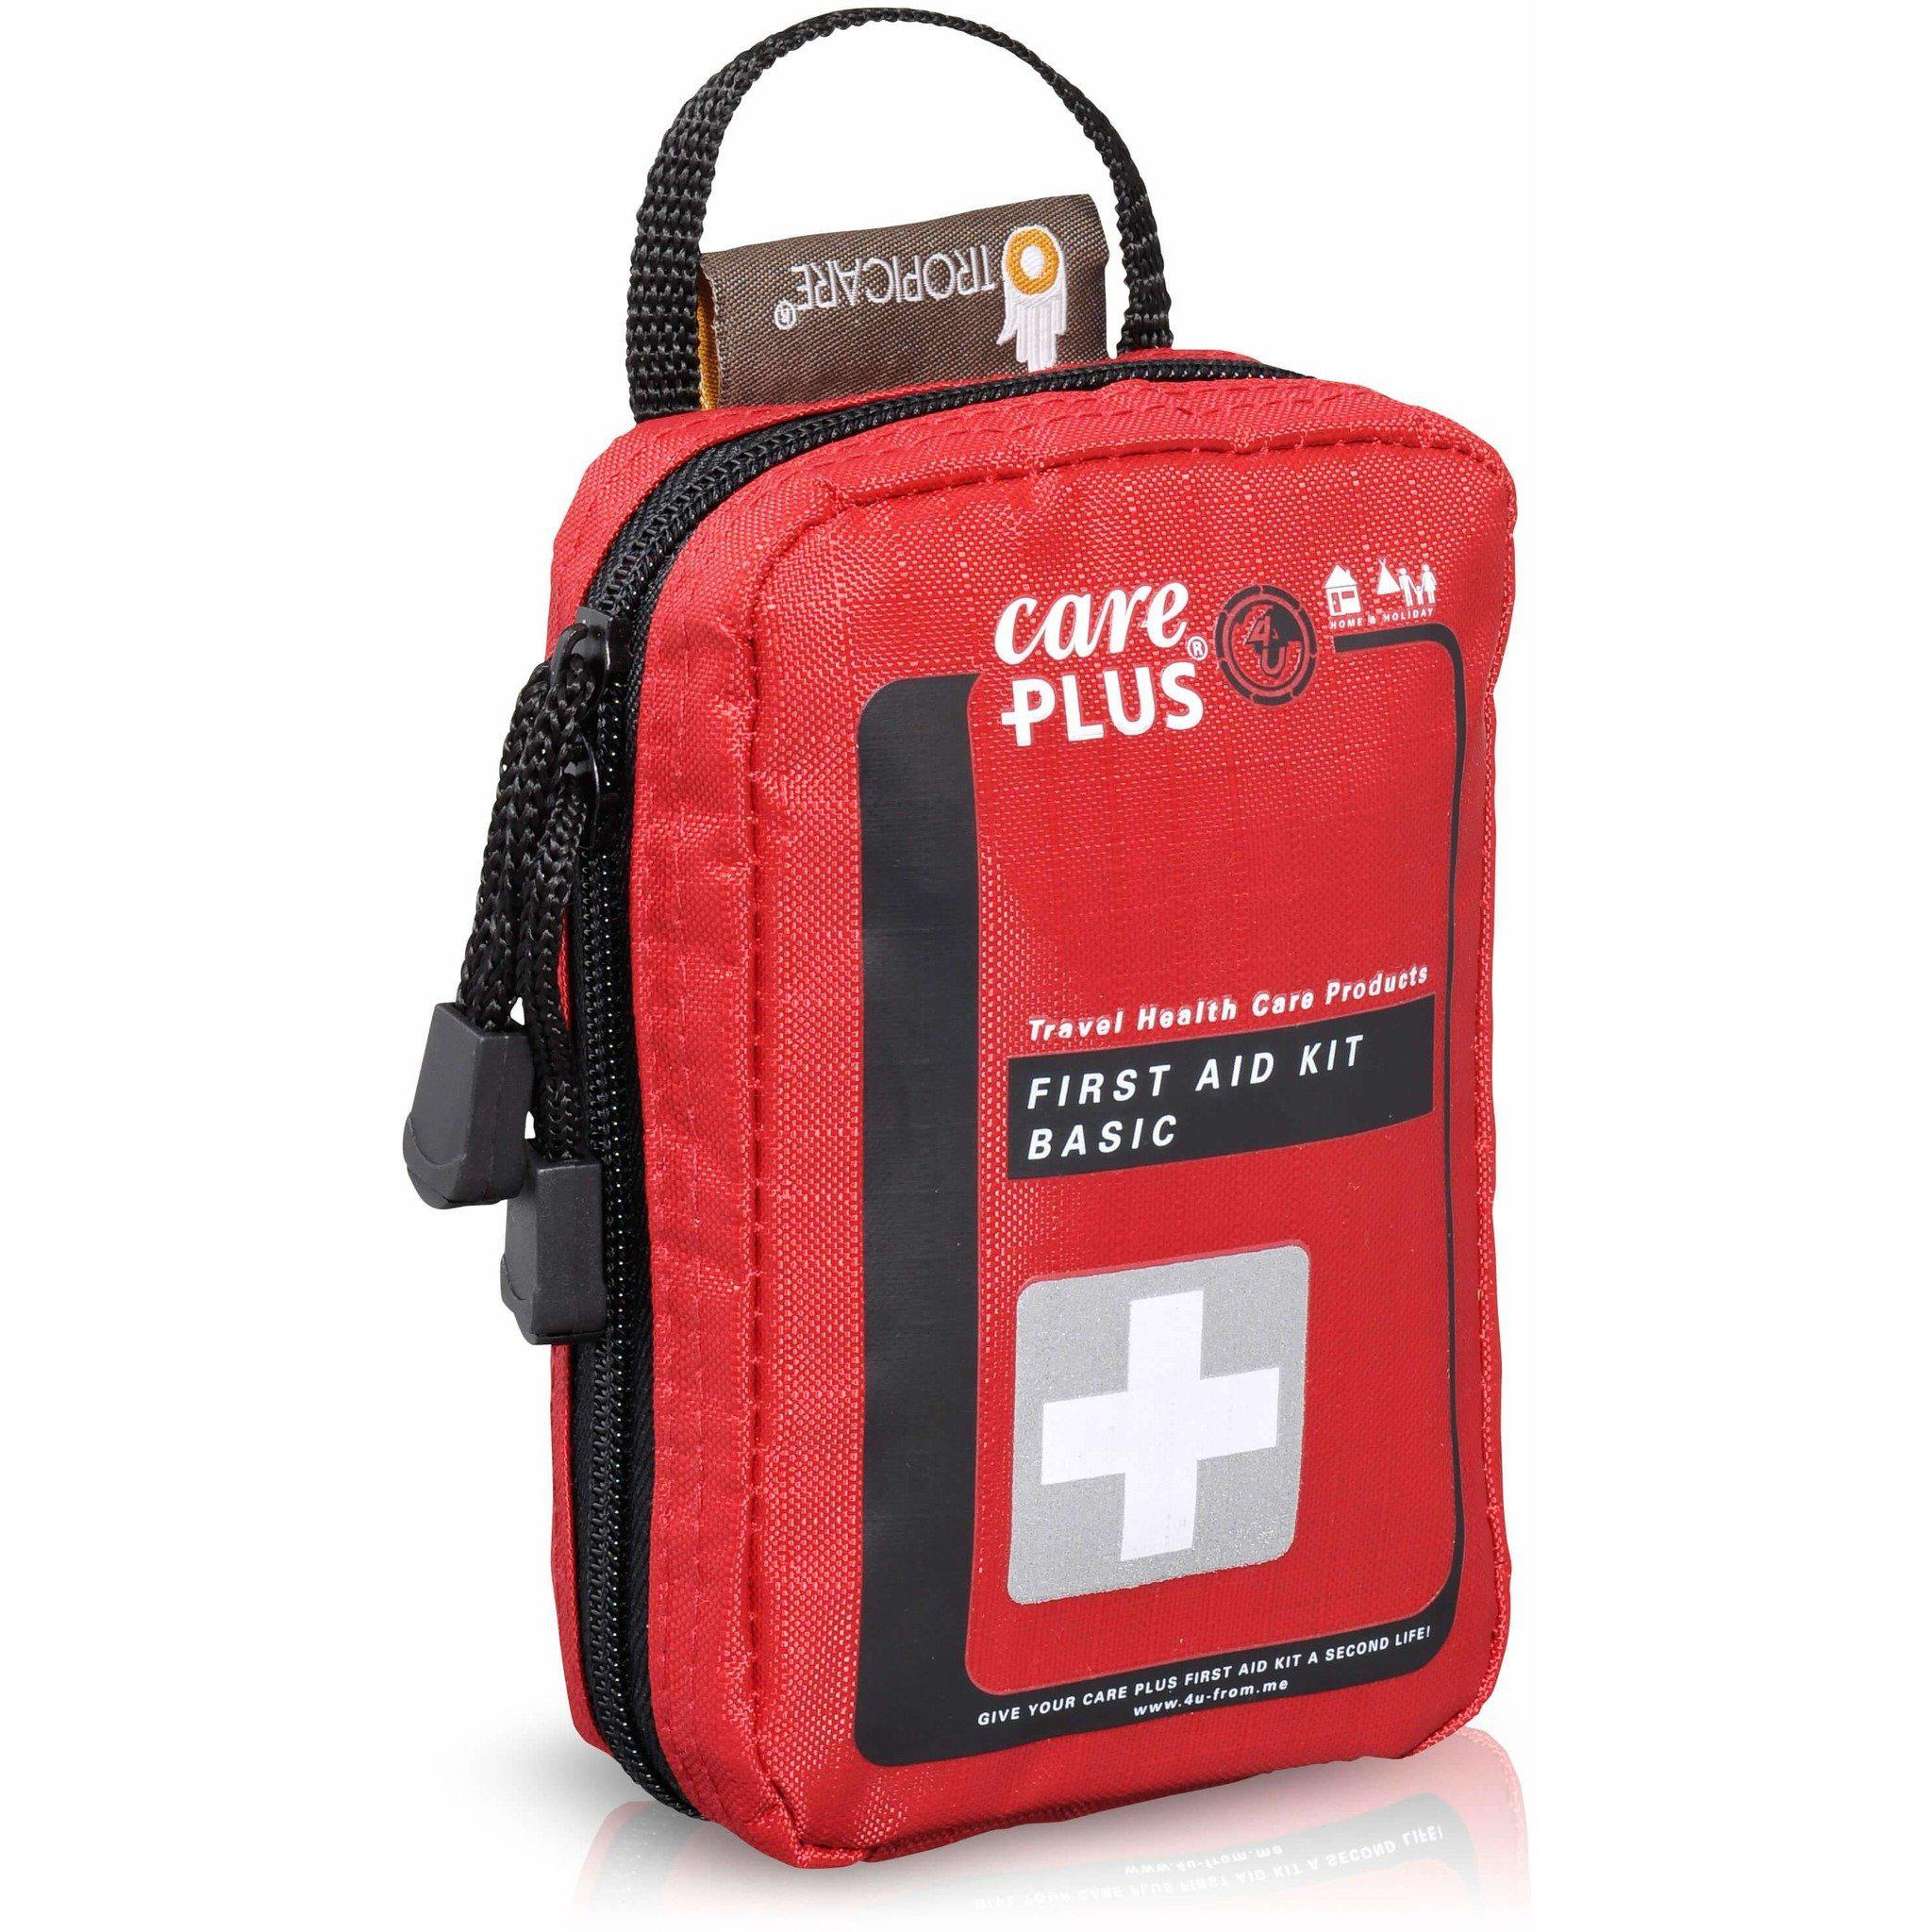 Care Plus First Aid Kit - Basic - Needs To Travel